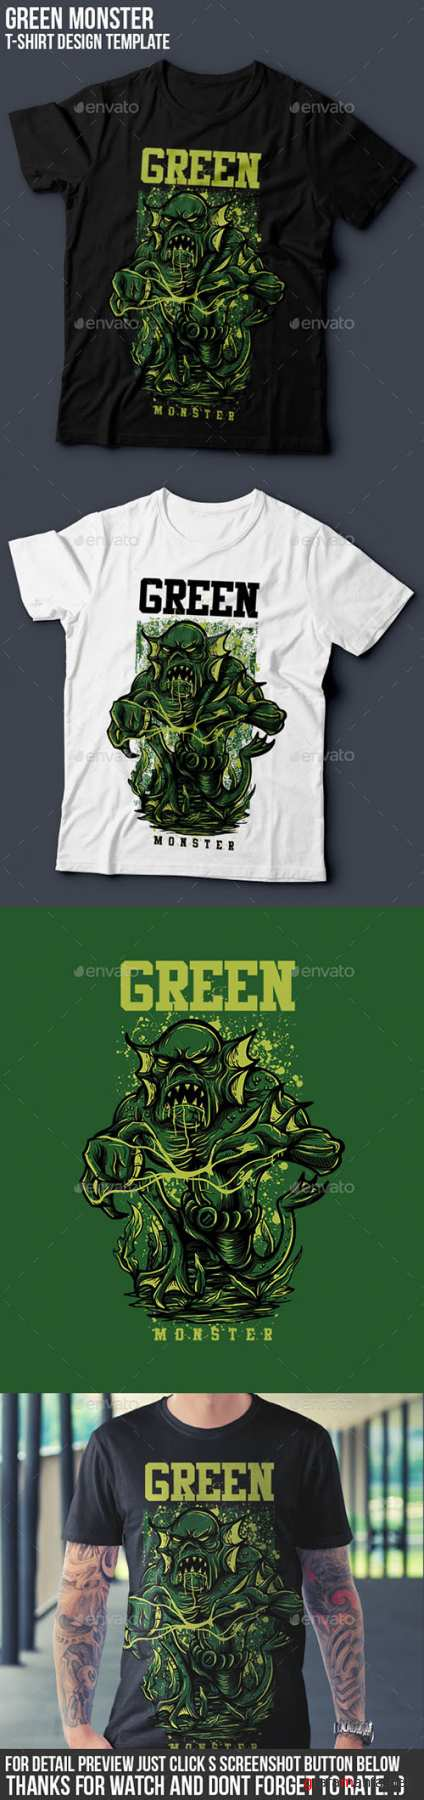 GR - Green Monster T-Shirt Design 14496421